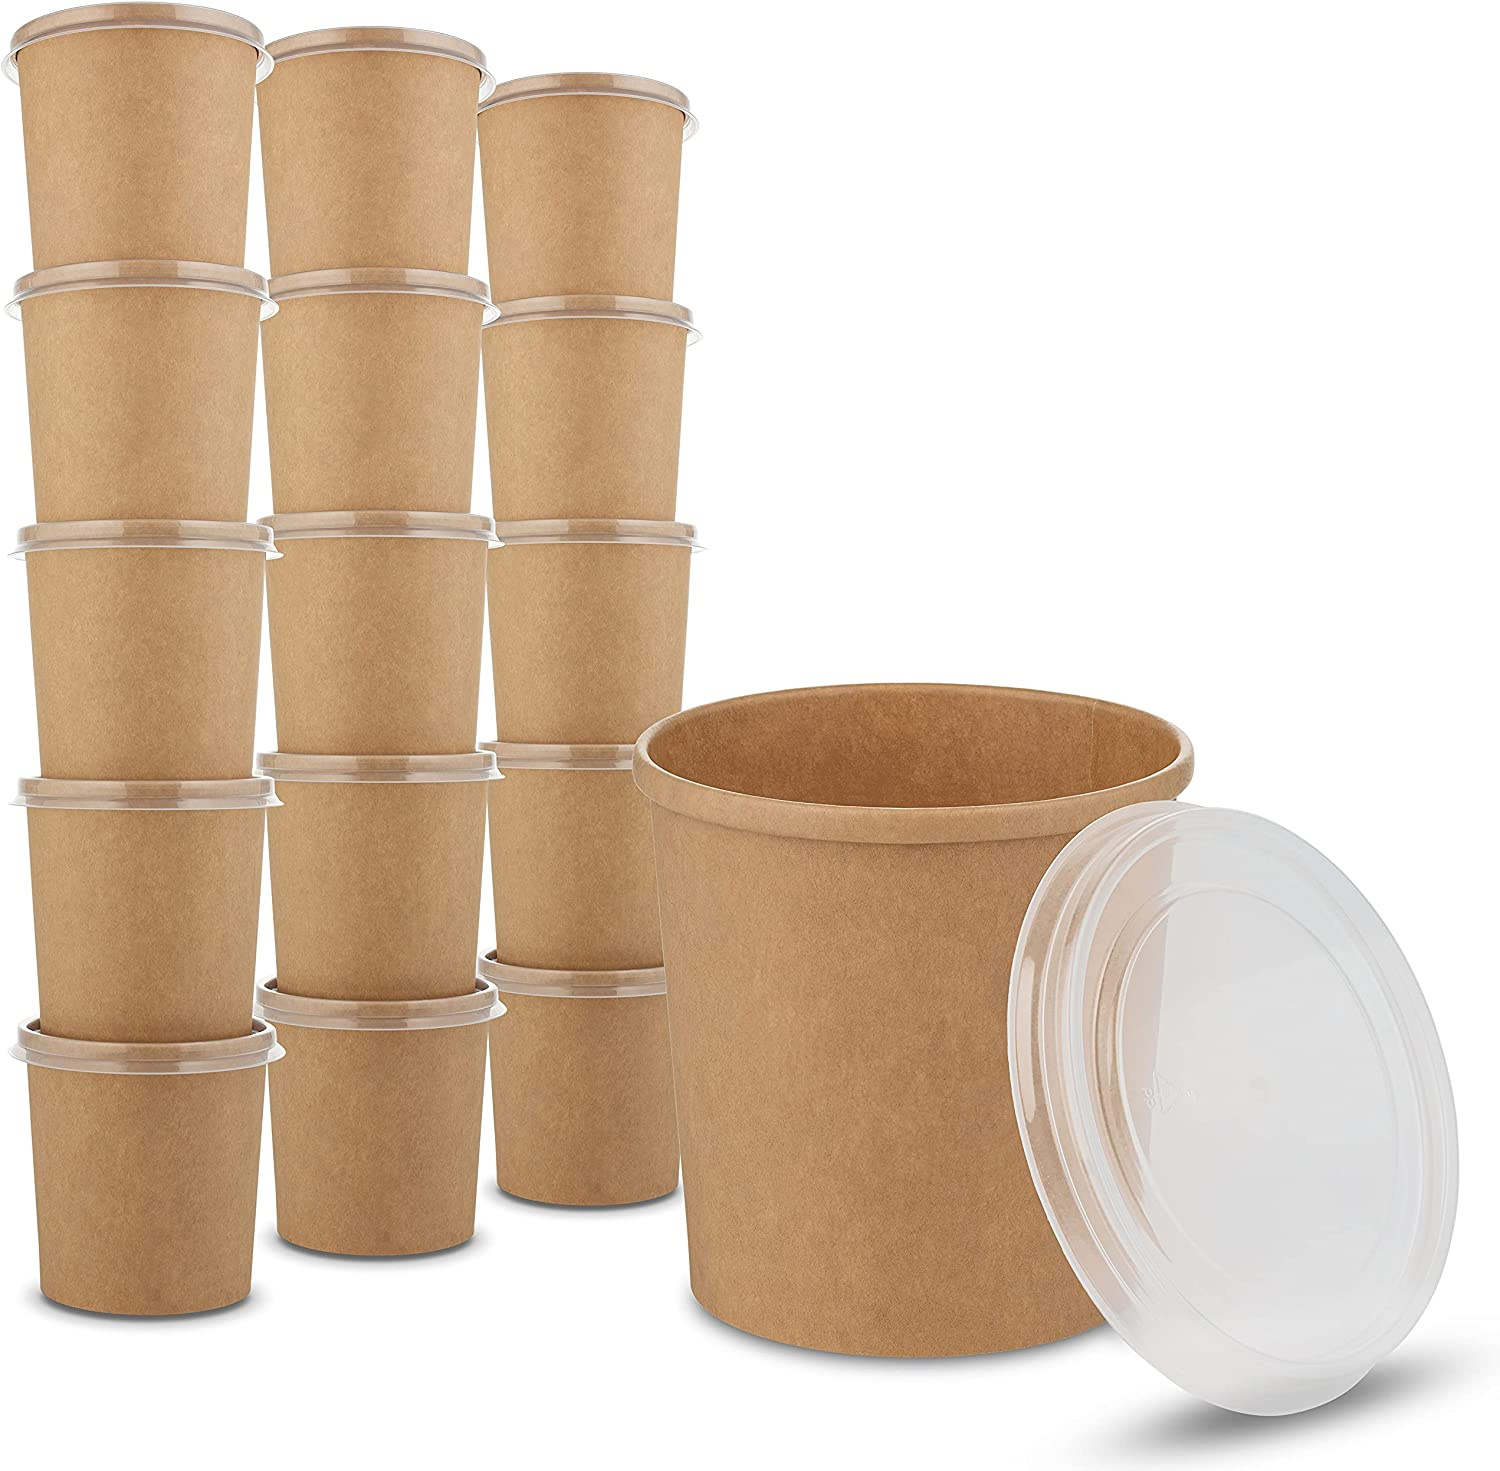 16 oz. Kraft Paper Cups - Bowls for Hot Food and Soup or Cold Ice Cream with Vented Plastic Lids to Prevent Leaks by MT Products - (20 Cups and 20 Lids)